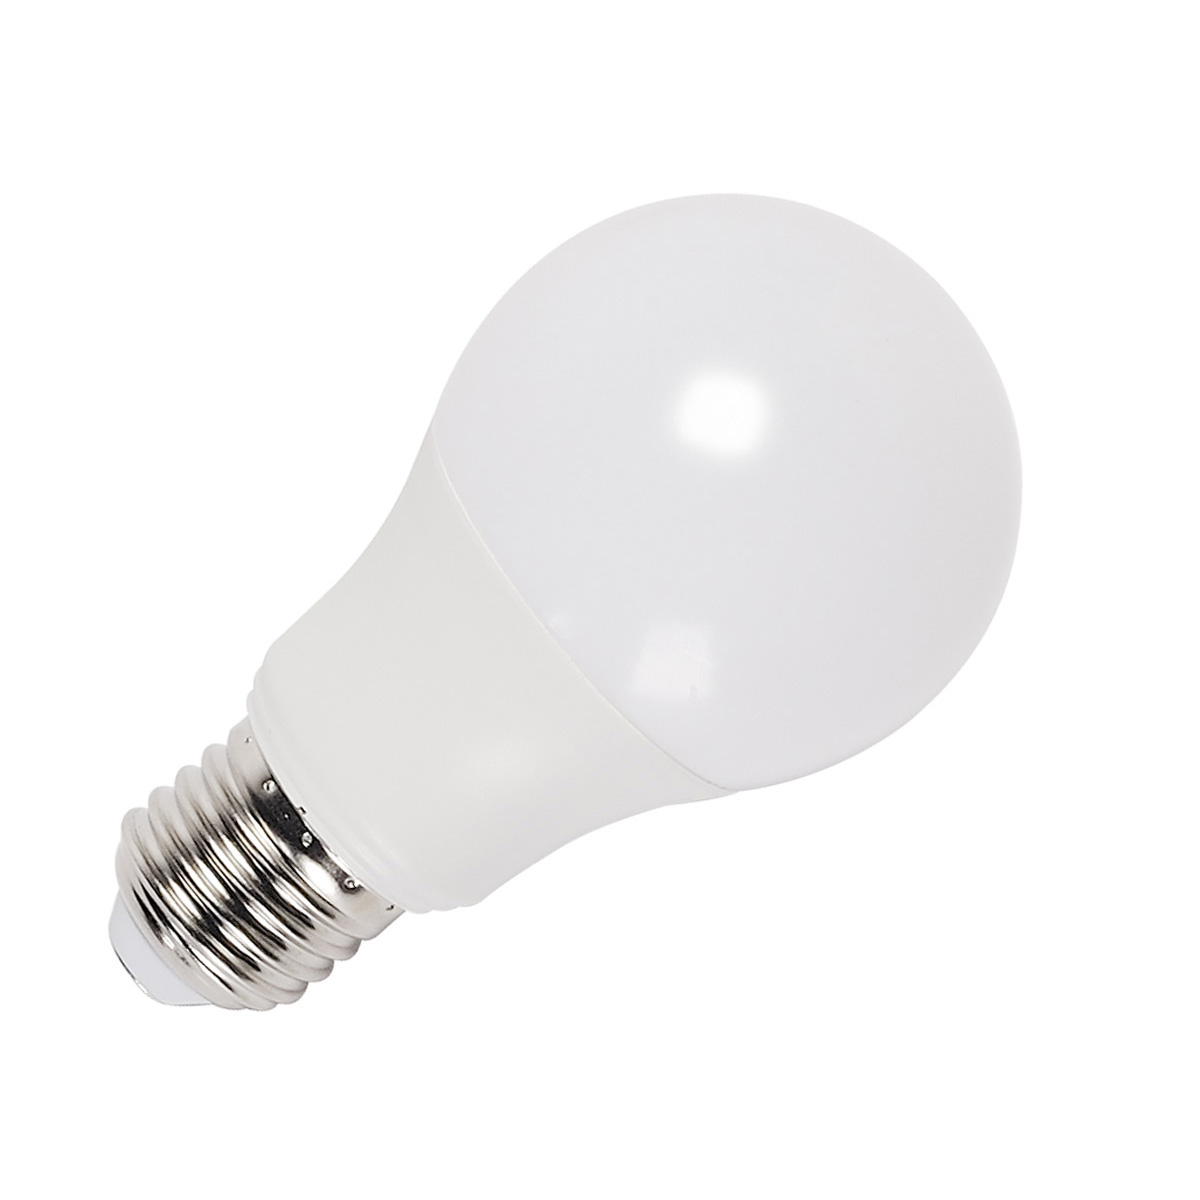 A60 Retrofit LED lamp, E27, 2700K, 10W, dimmable